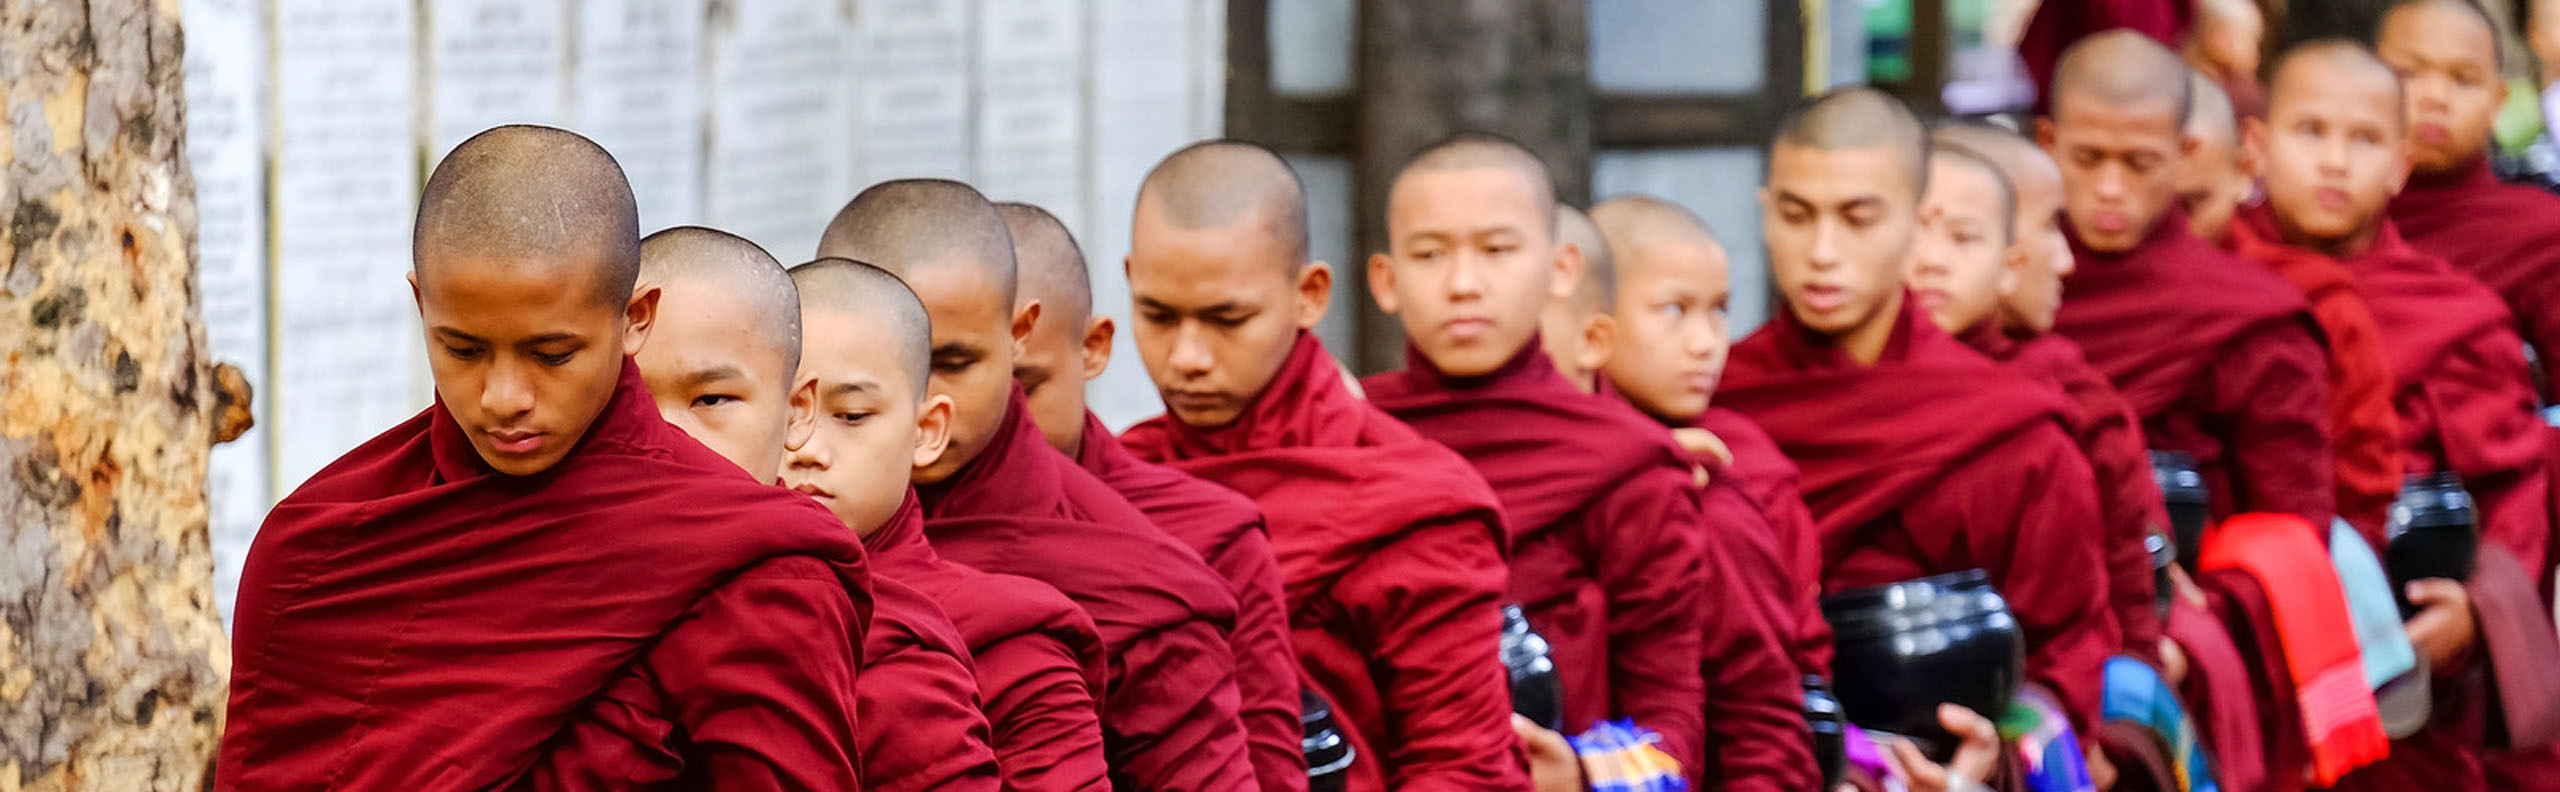 Religion in Myanmar - Buddhist Country